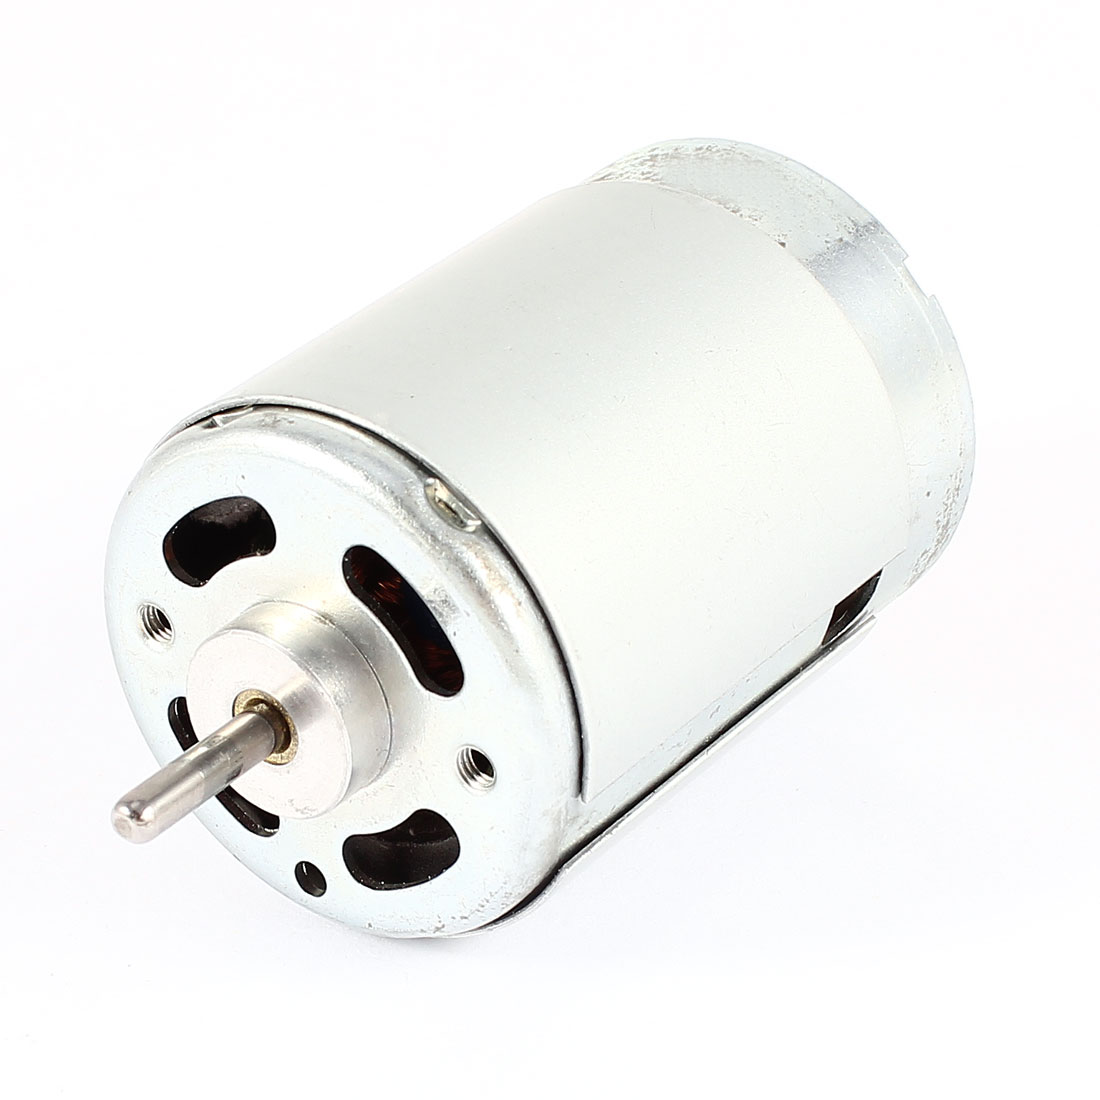 DC 6-12V 6000-15000RPM 3mmx15mm Shaft Motor Replacement